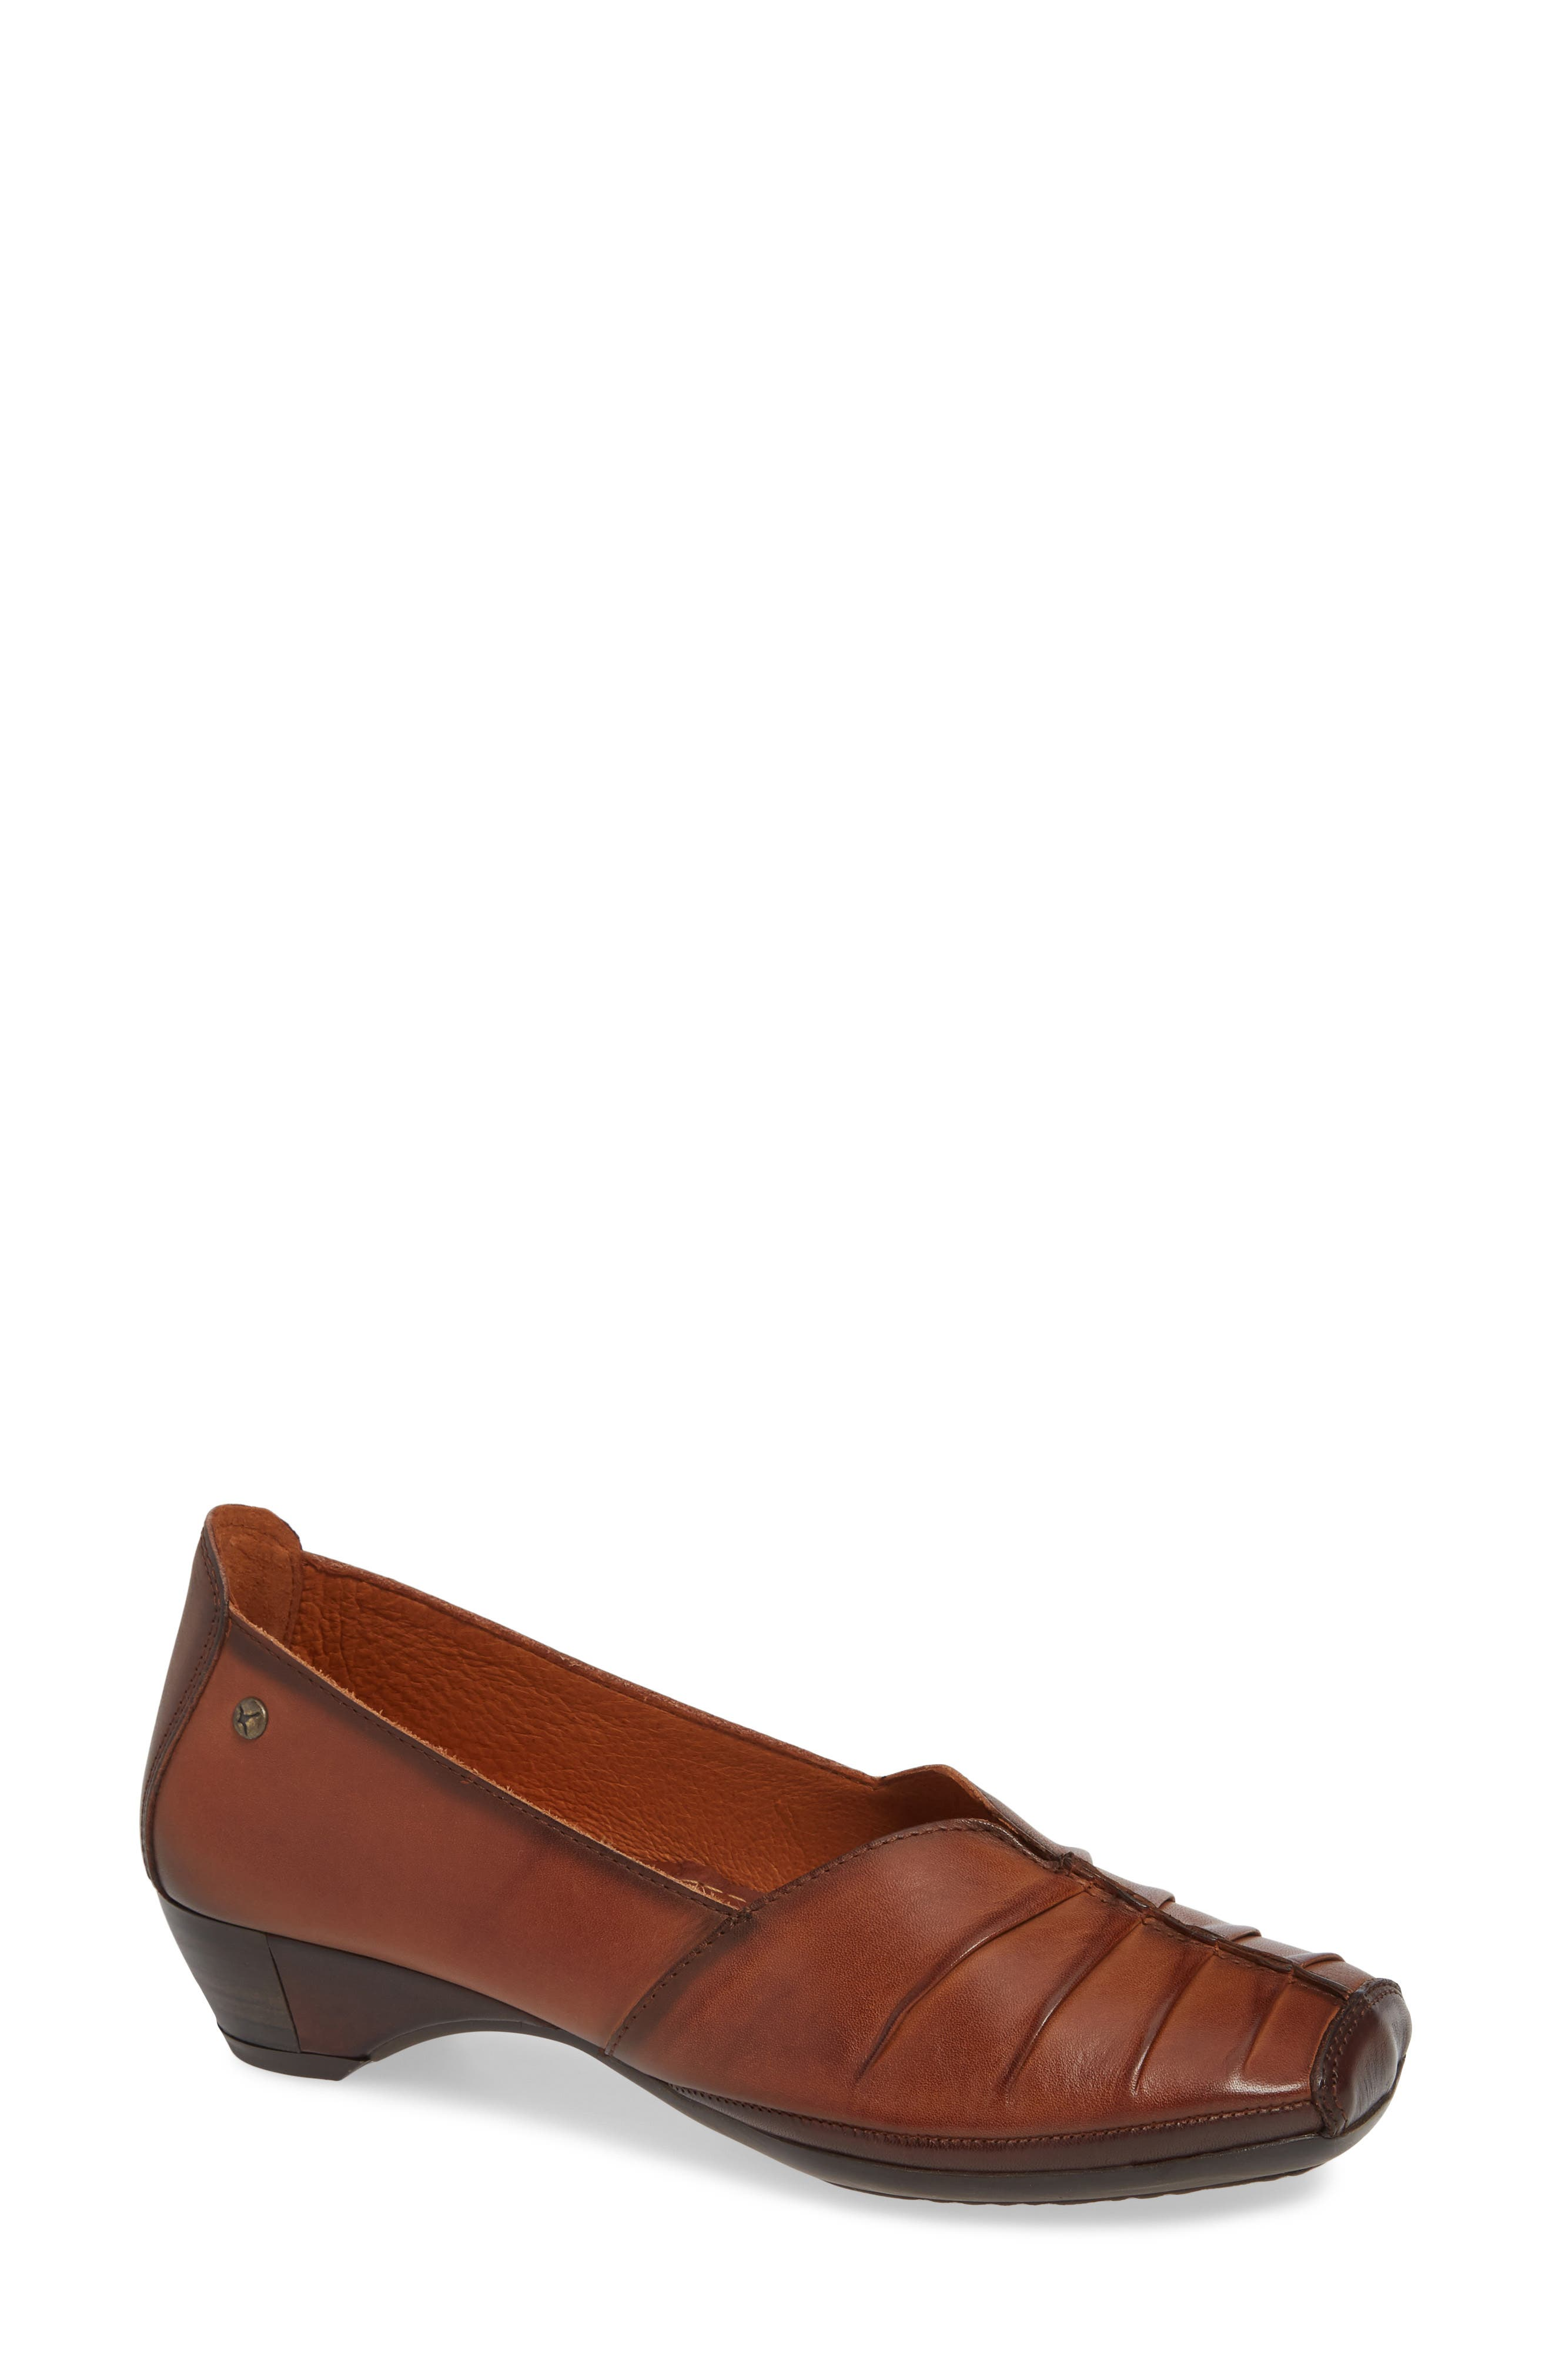 Pikolinos Gandia Pleated Pump, Brown